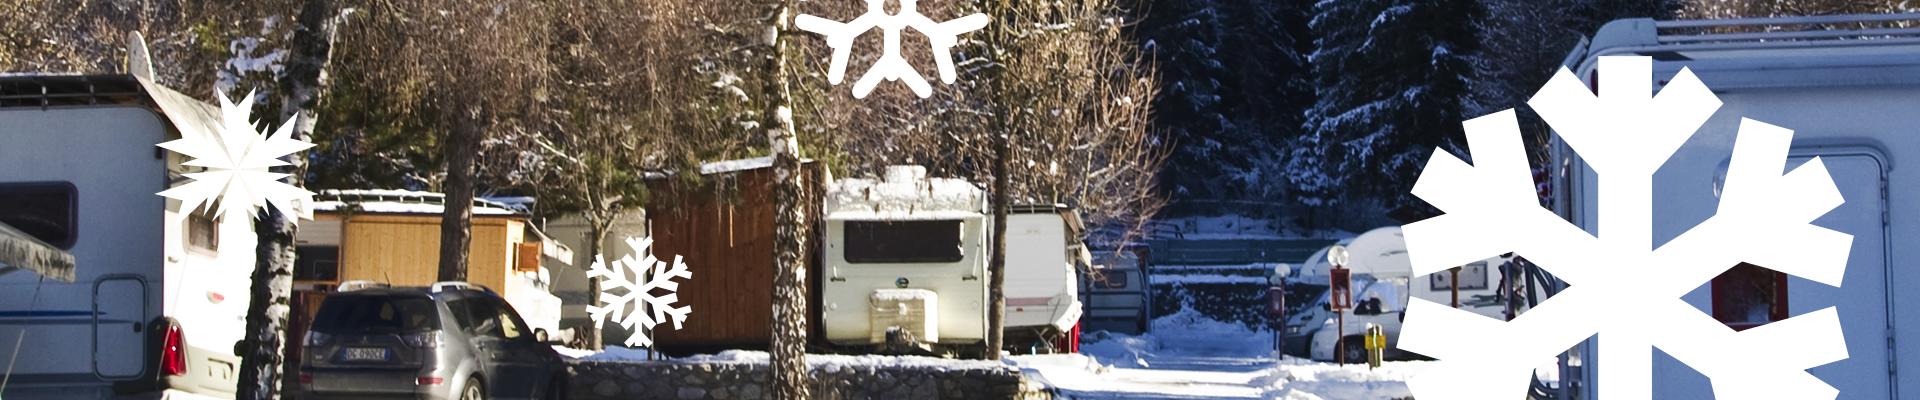 Park your RV wisely in the winter.